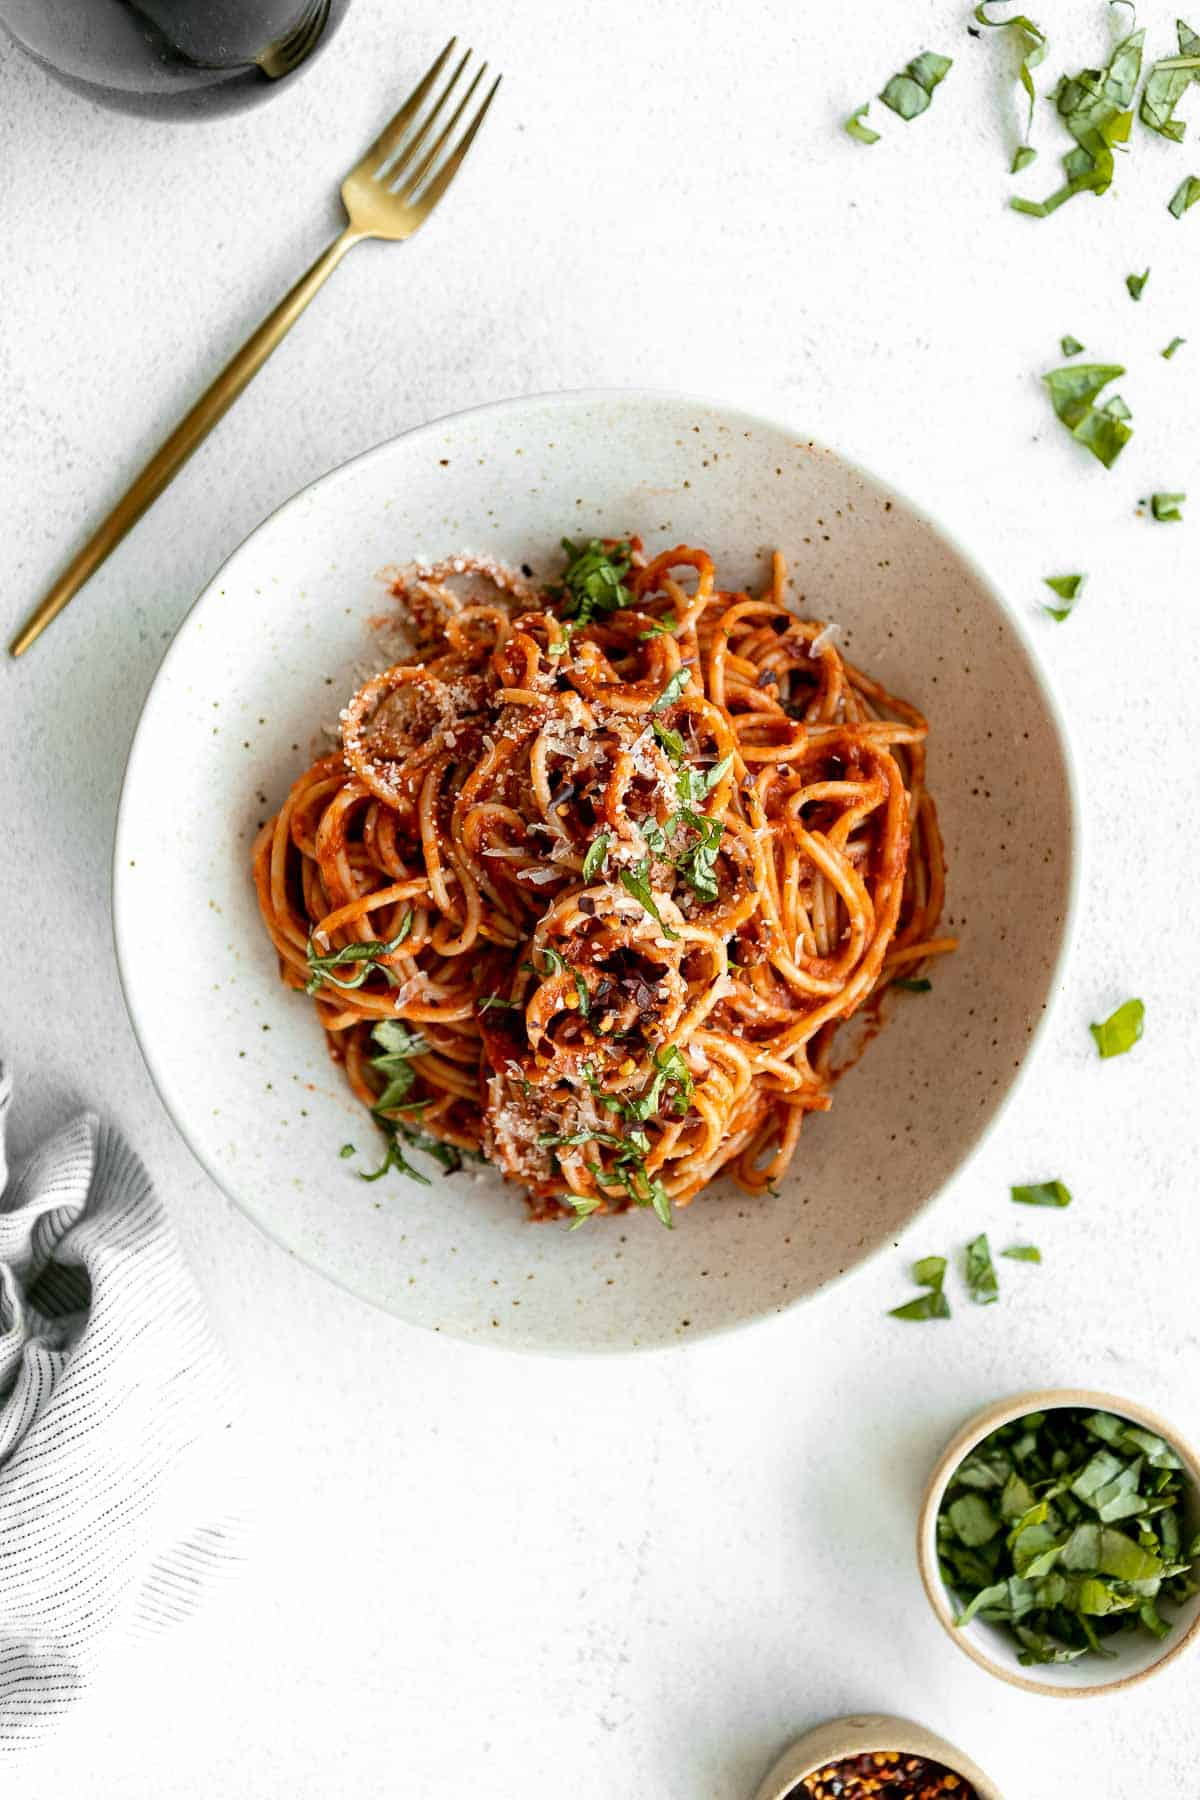 final spaghetti in a bowl with parmesan and basil